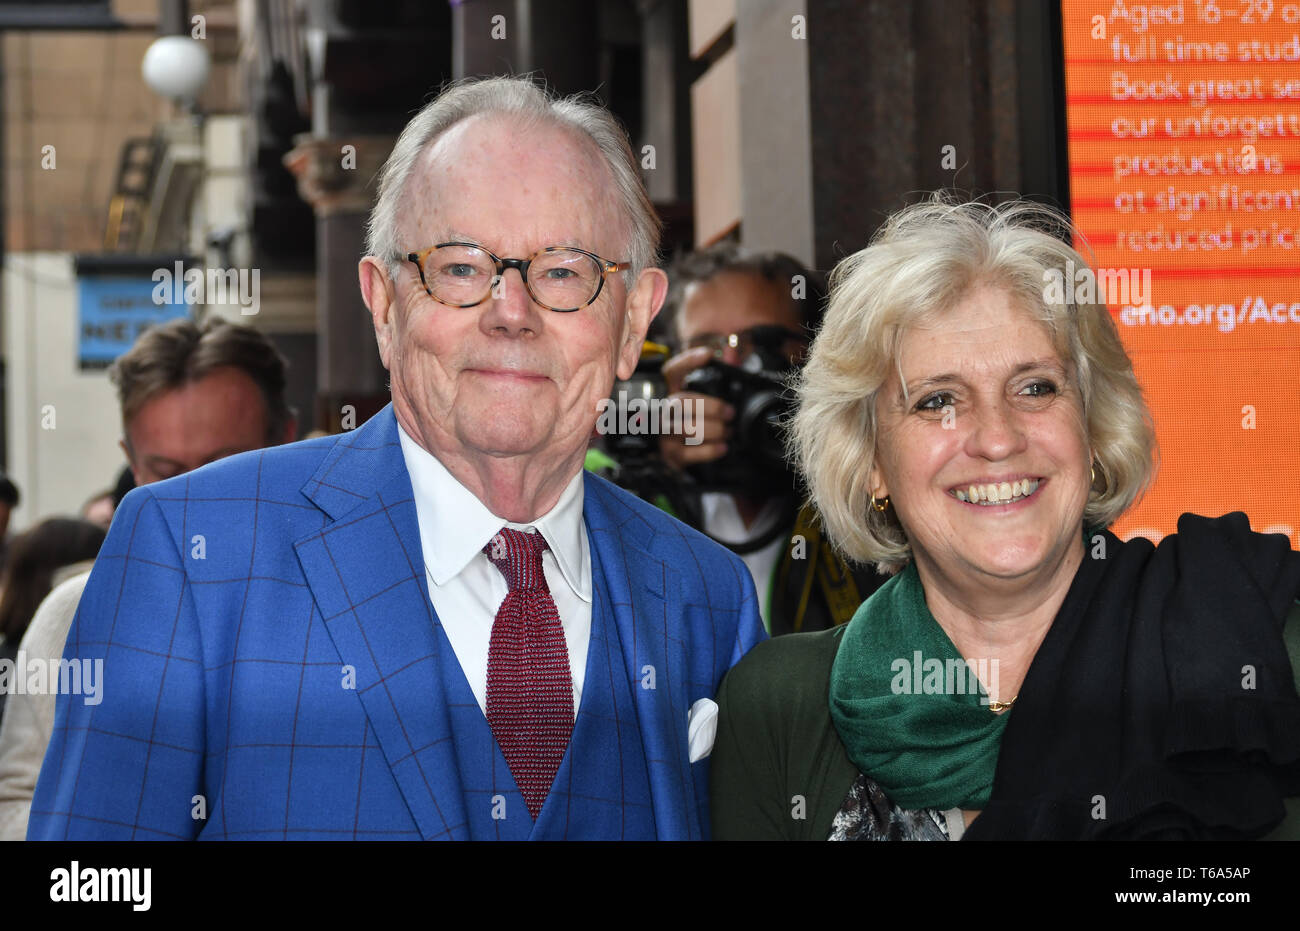 London Coliseum, UK. 30th Apr 2019. Arrivals at Man of La Mancha, at London Coliseum on 30 April 2019, London, UK. Credit: Picture Capital/Alamy Live News - Stock Image